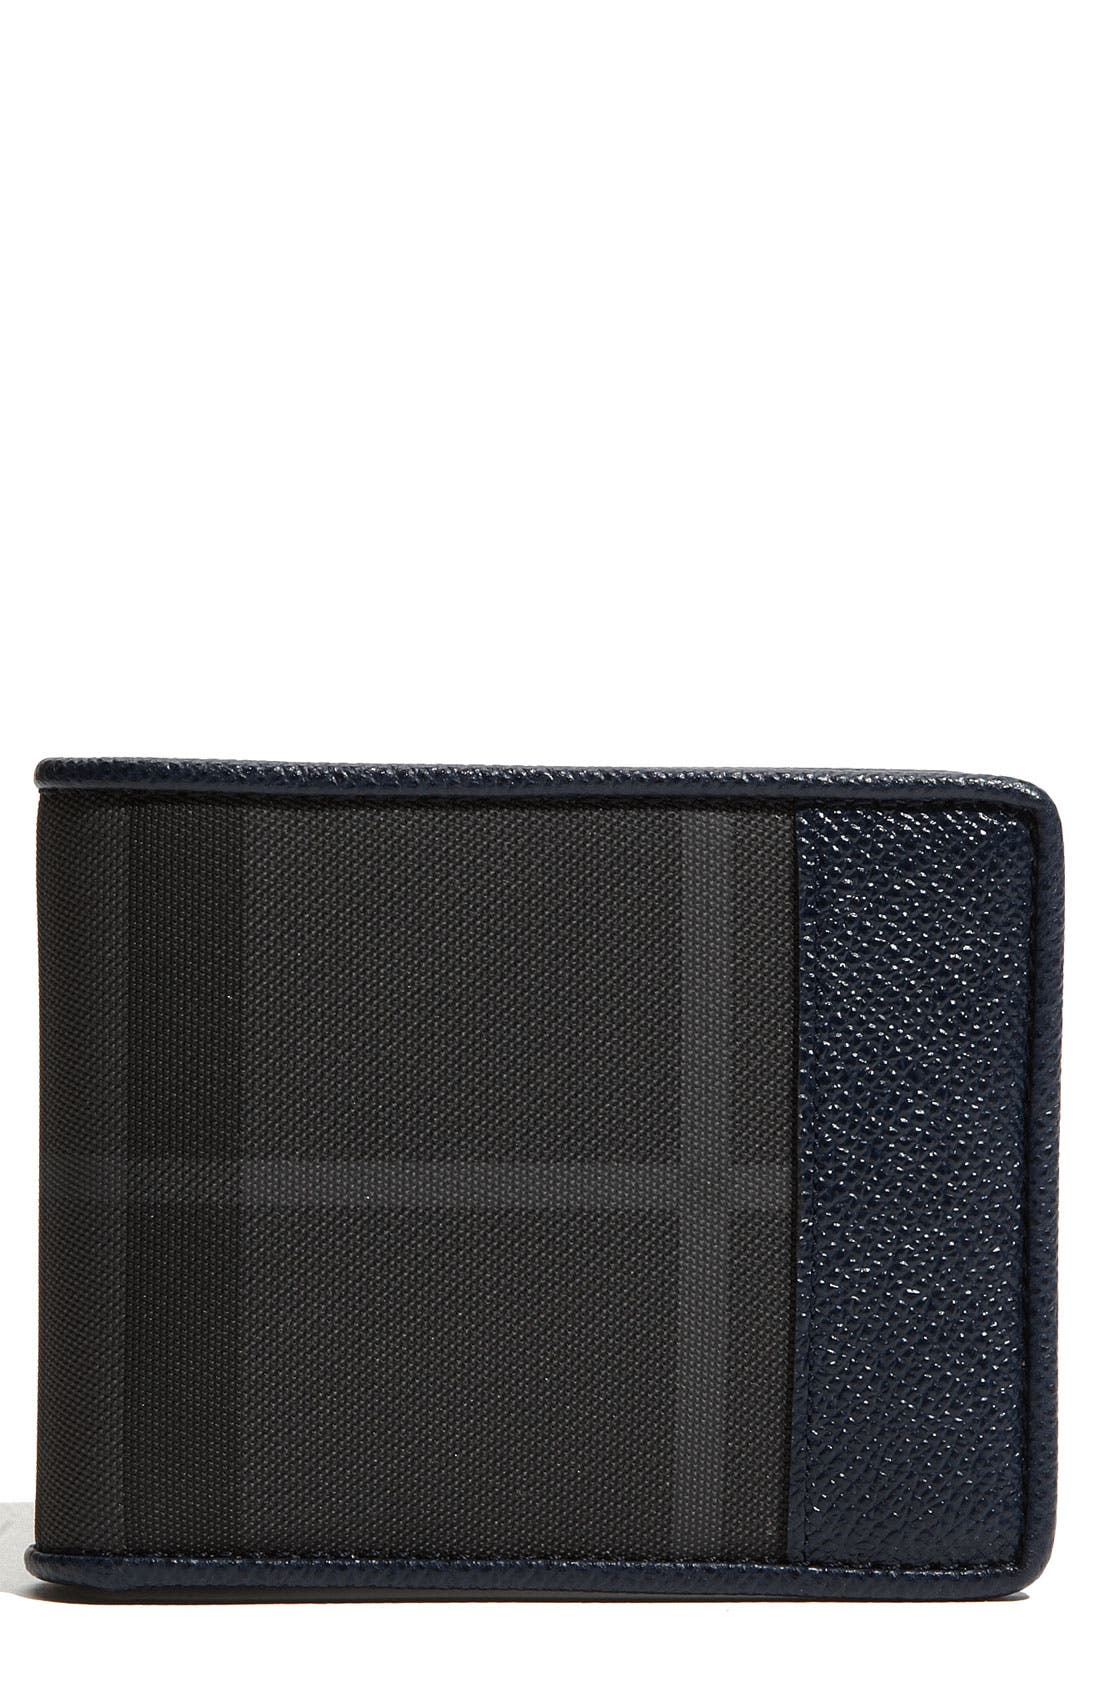 Alternate Image 1 Selected - Burberry Check Print Billfold